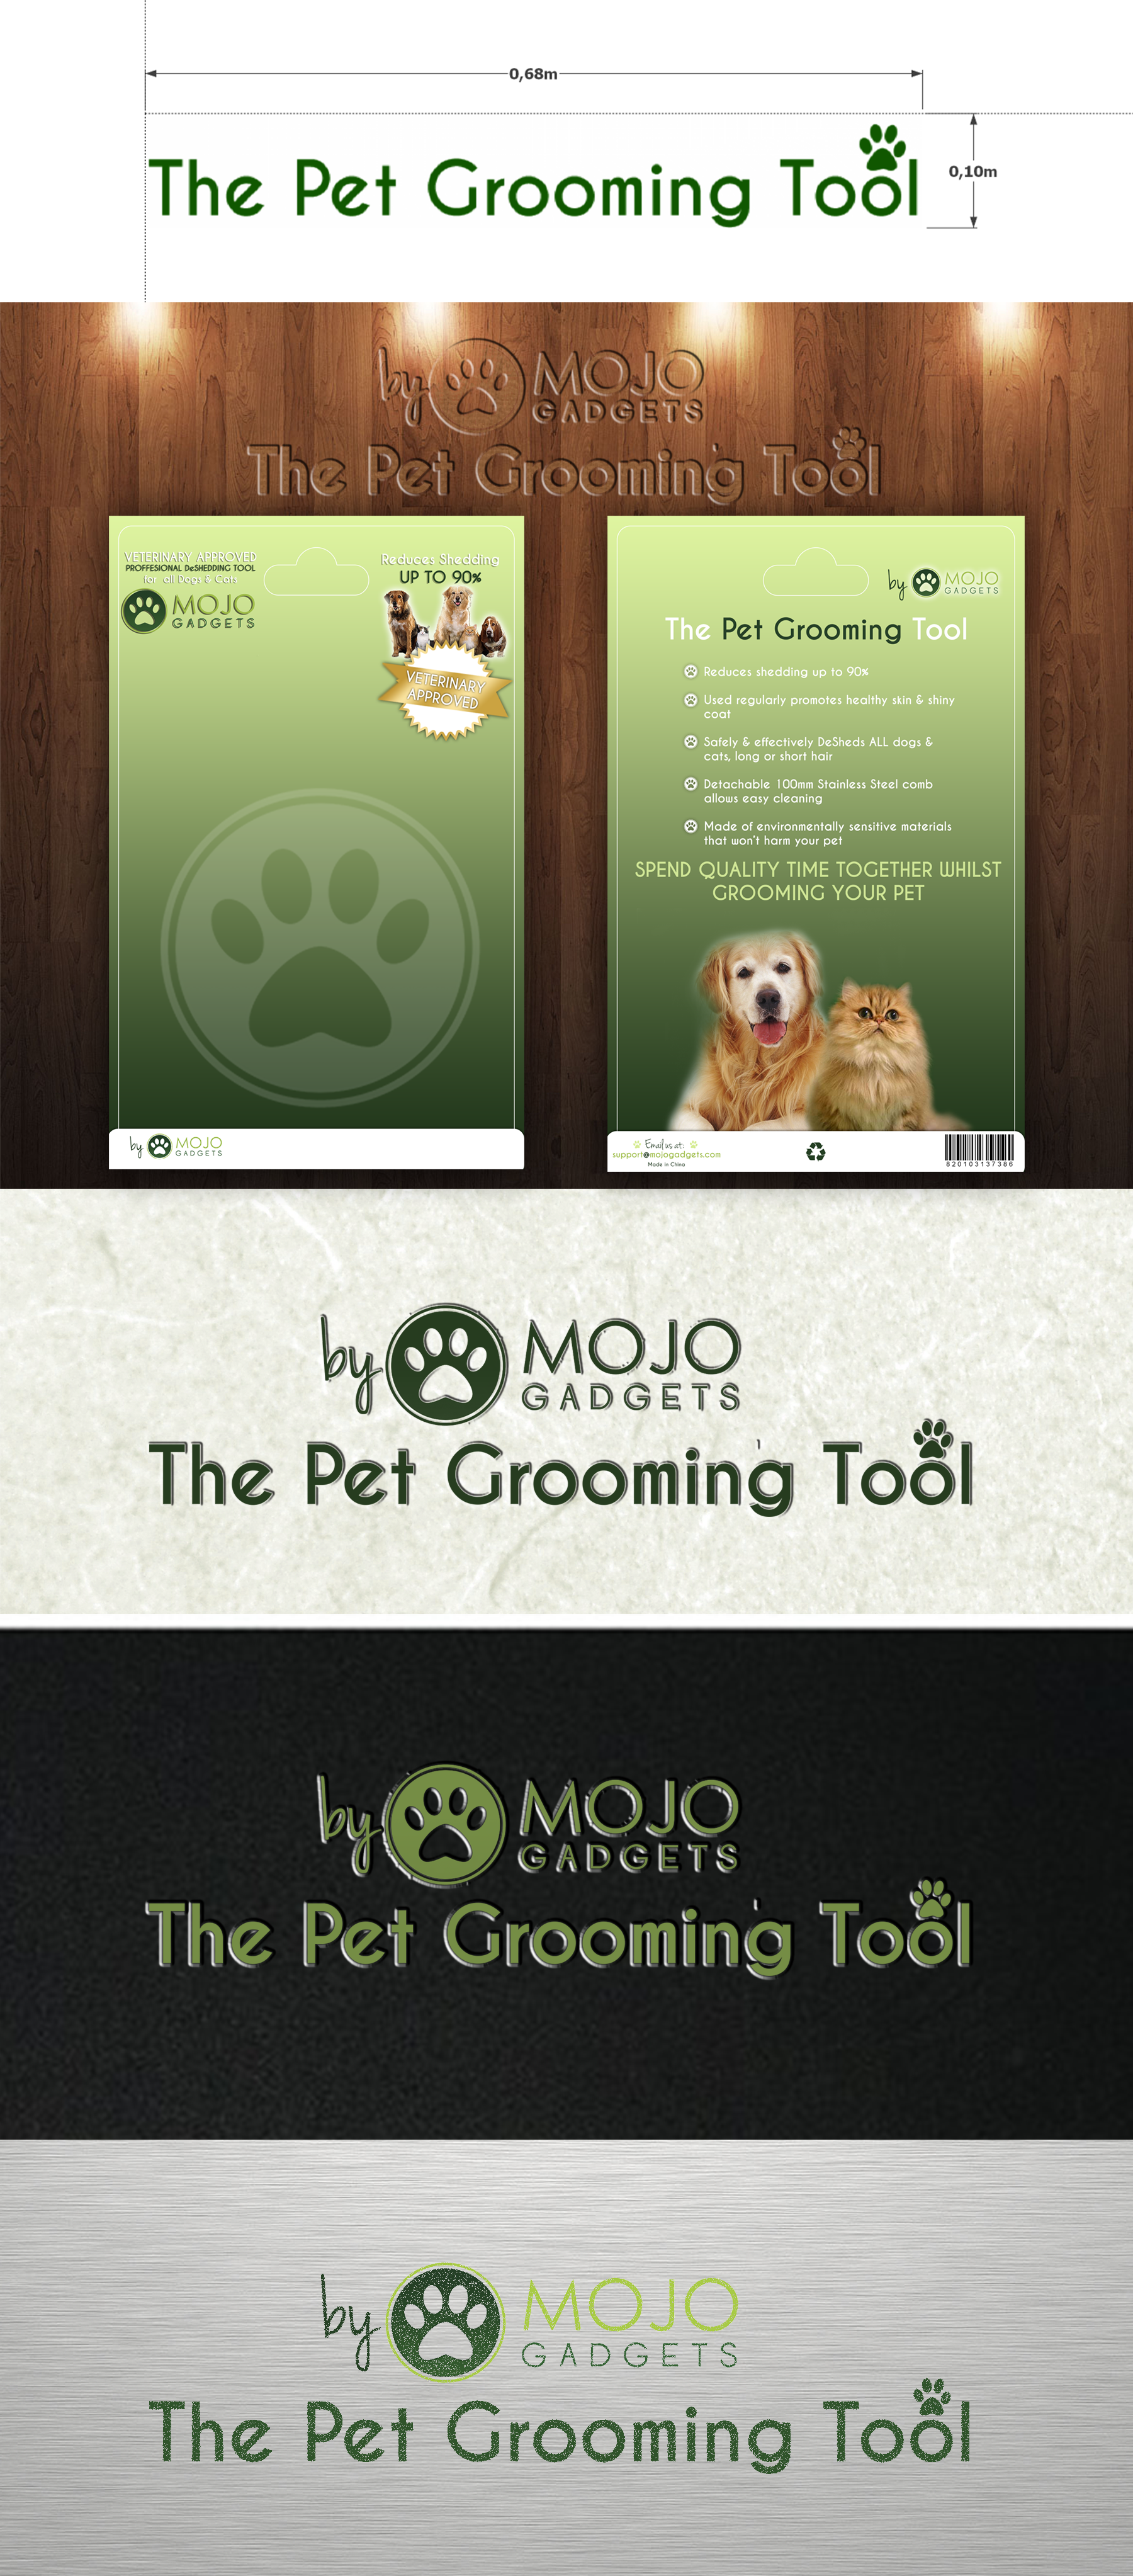 Create a simple but effective packaging design for our pet grooming tool!